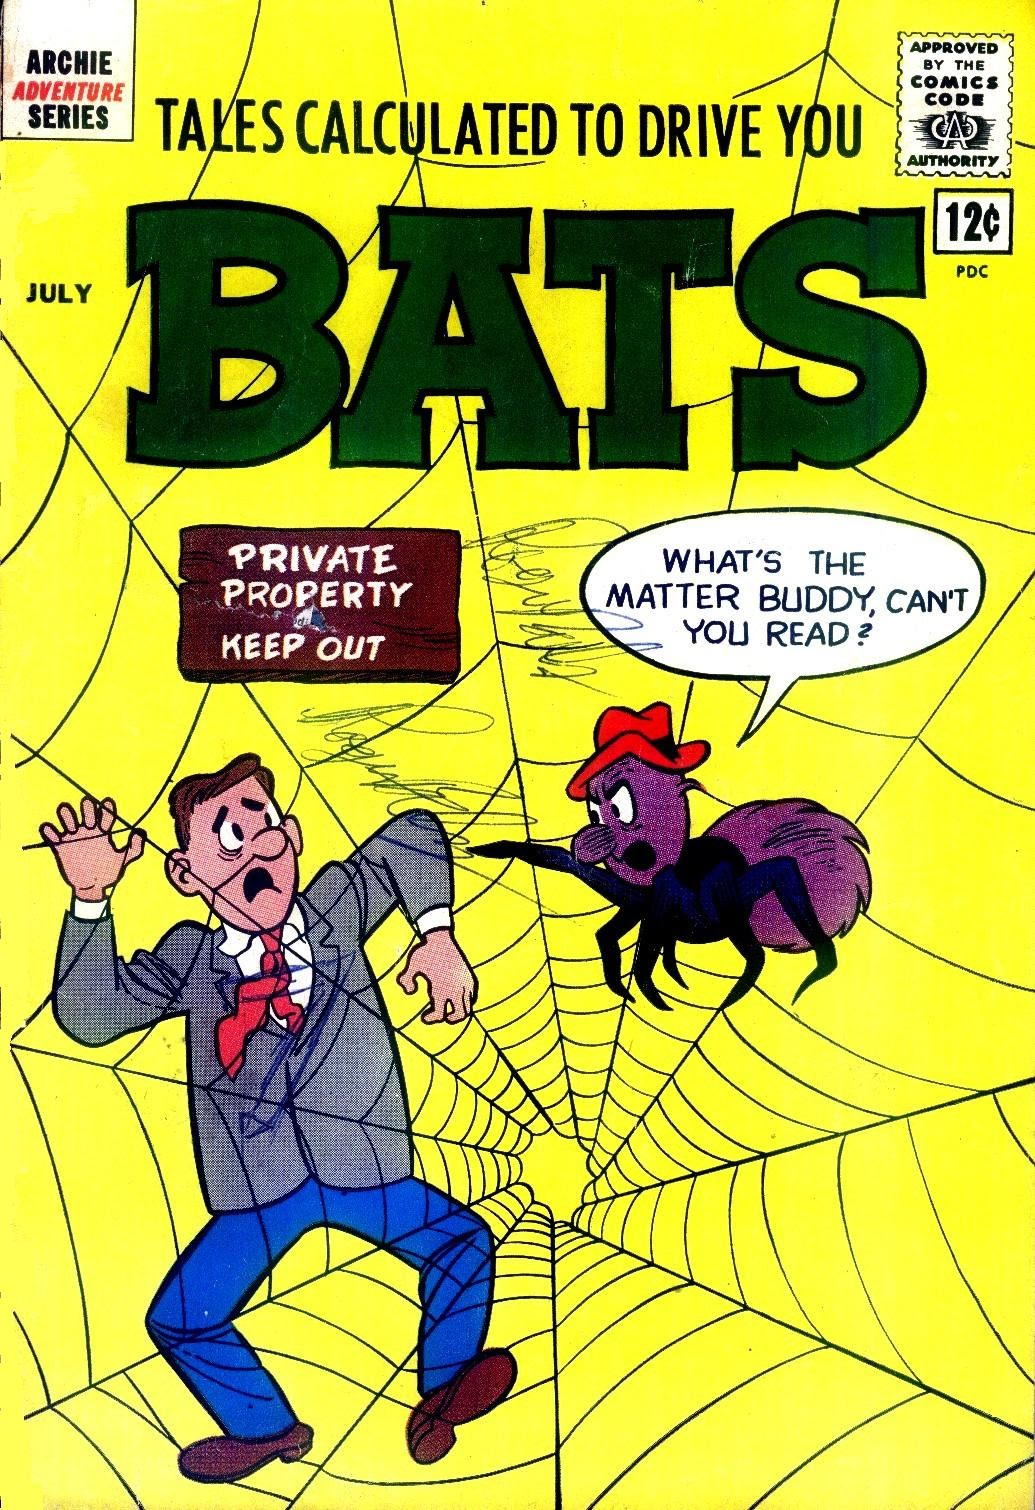 Read online Tales Calculated to Drive You Bats comic -  Issue #5 - 1